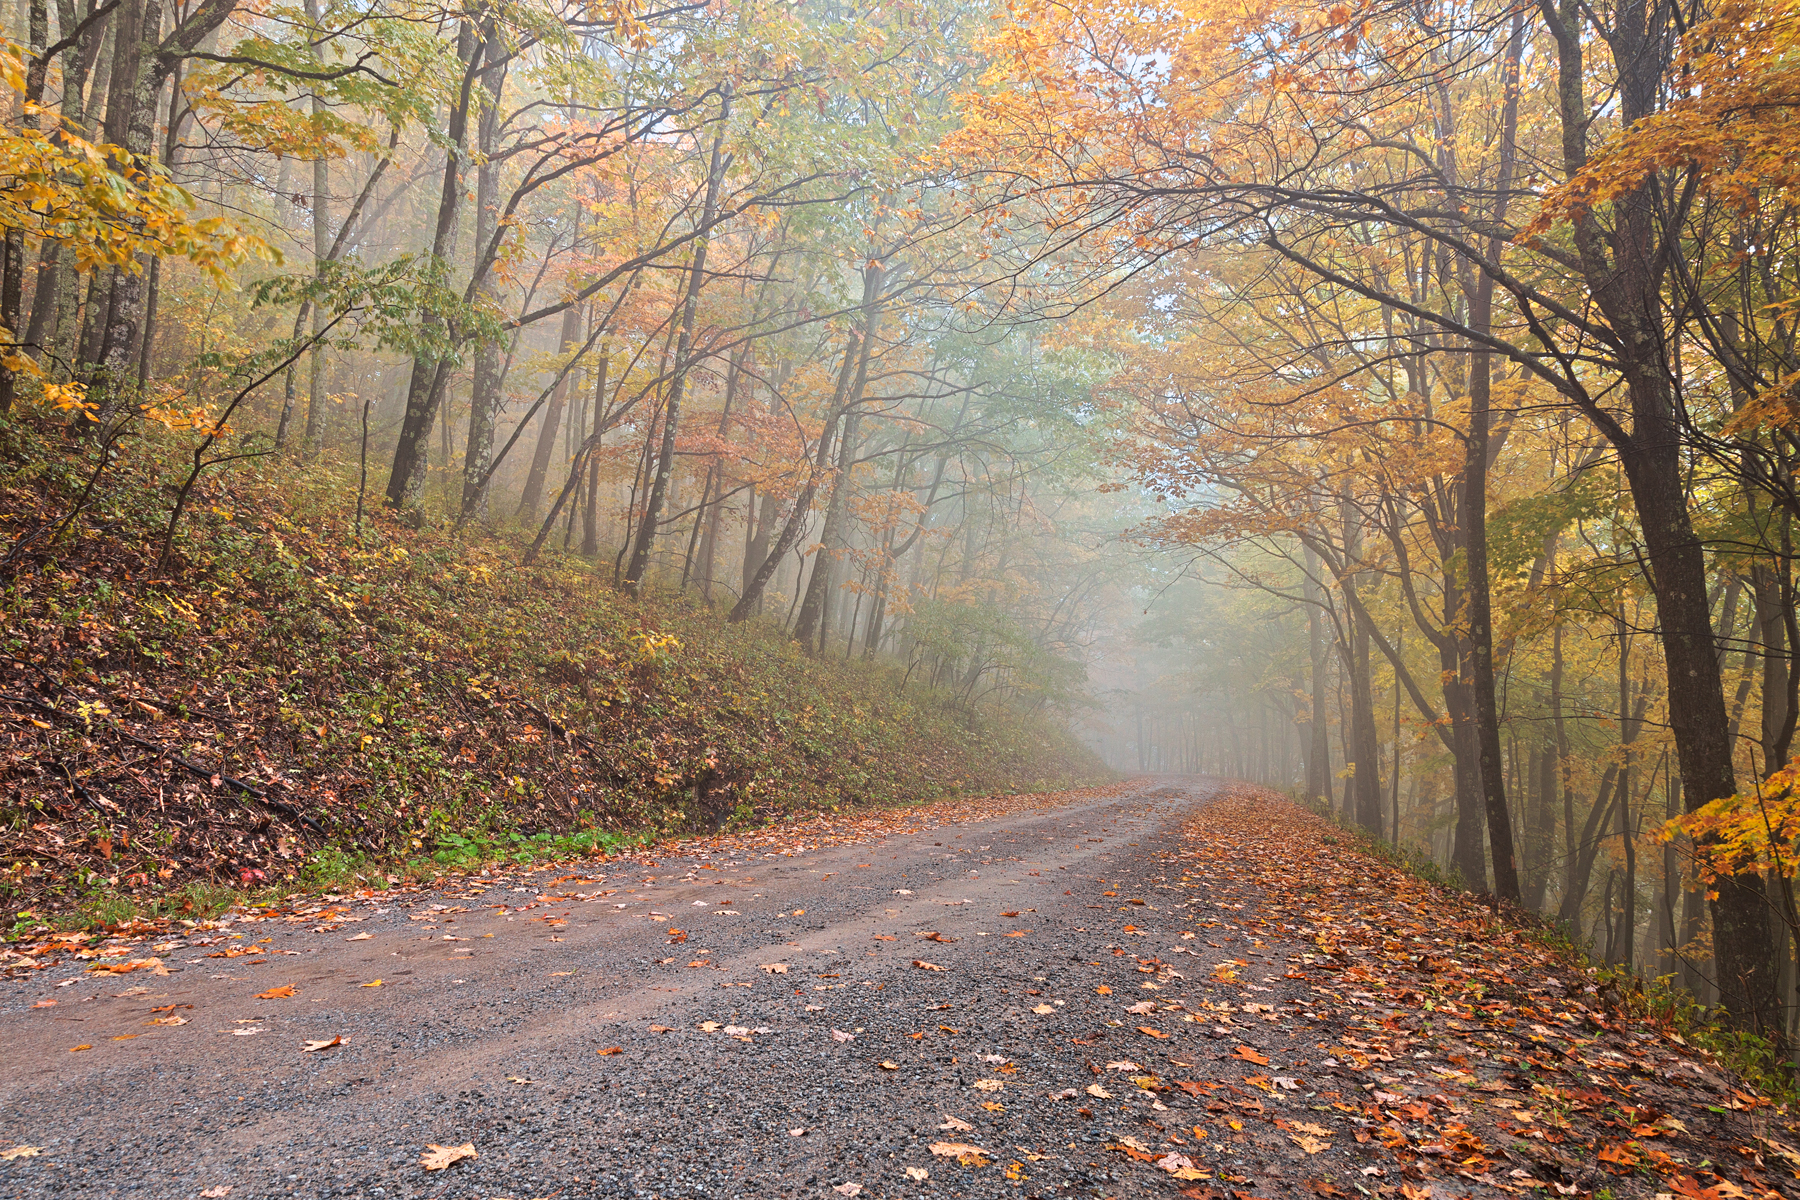 Misty Autumn Forest Road - HDR, Adventure, Perspective, Scenery, Scene, HQ Photo